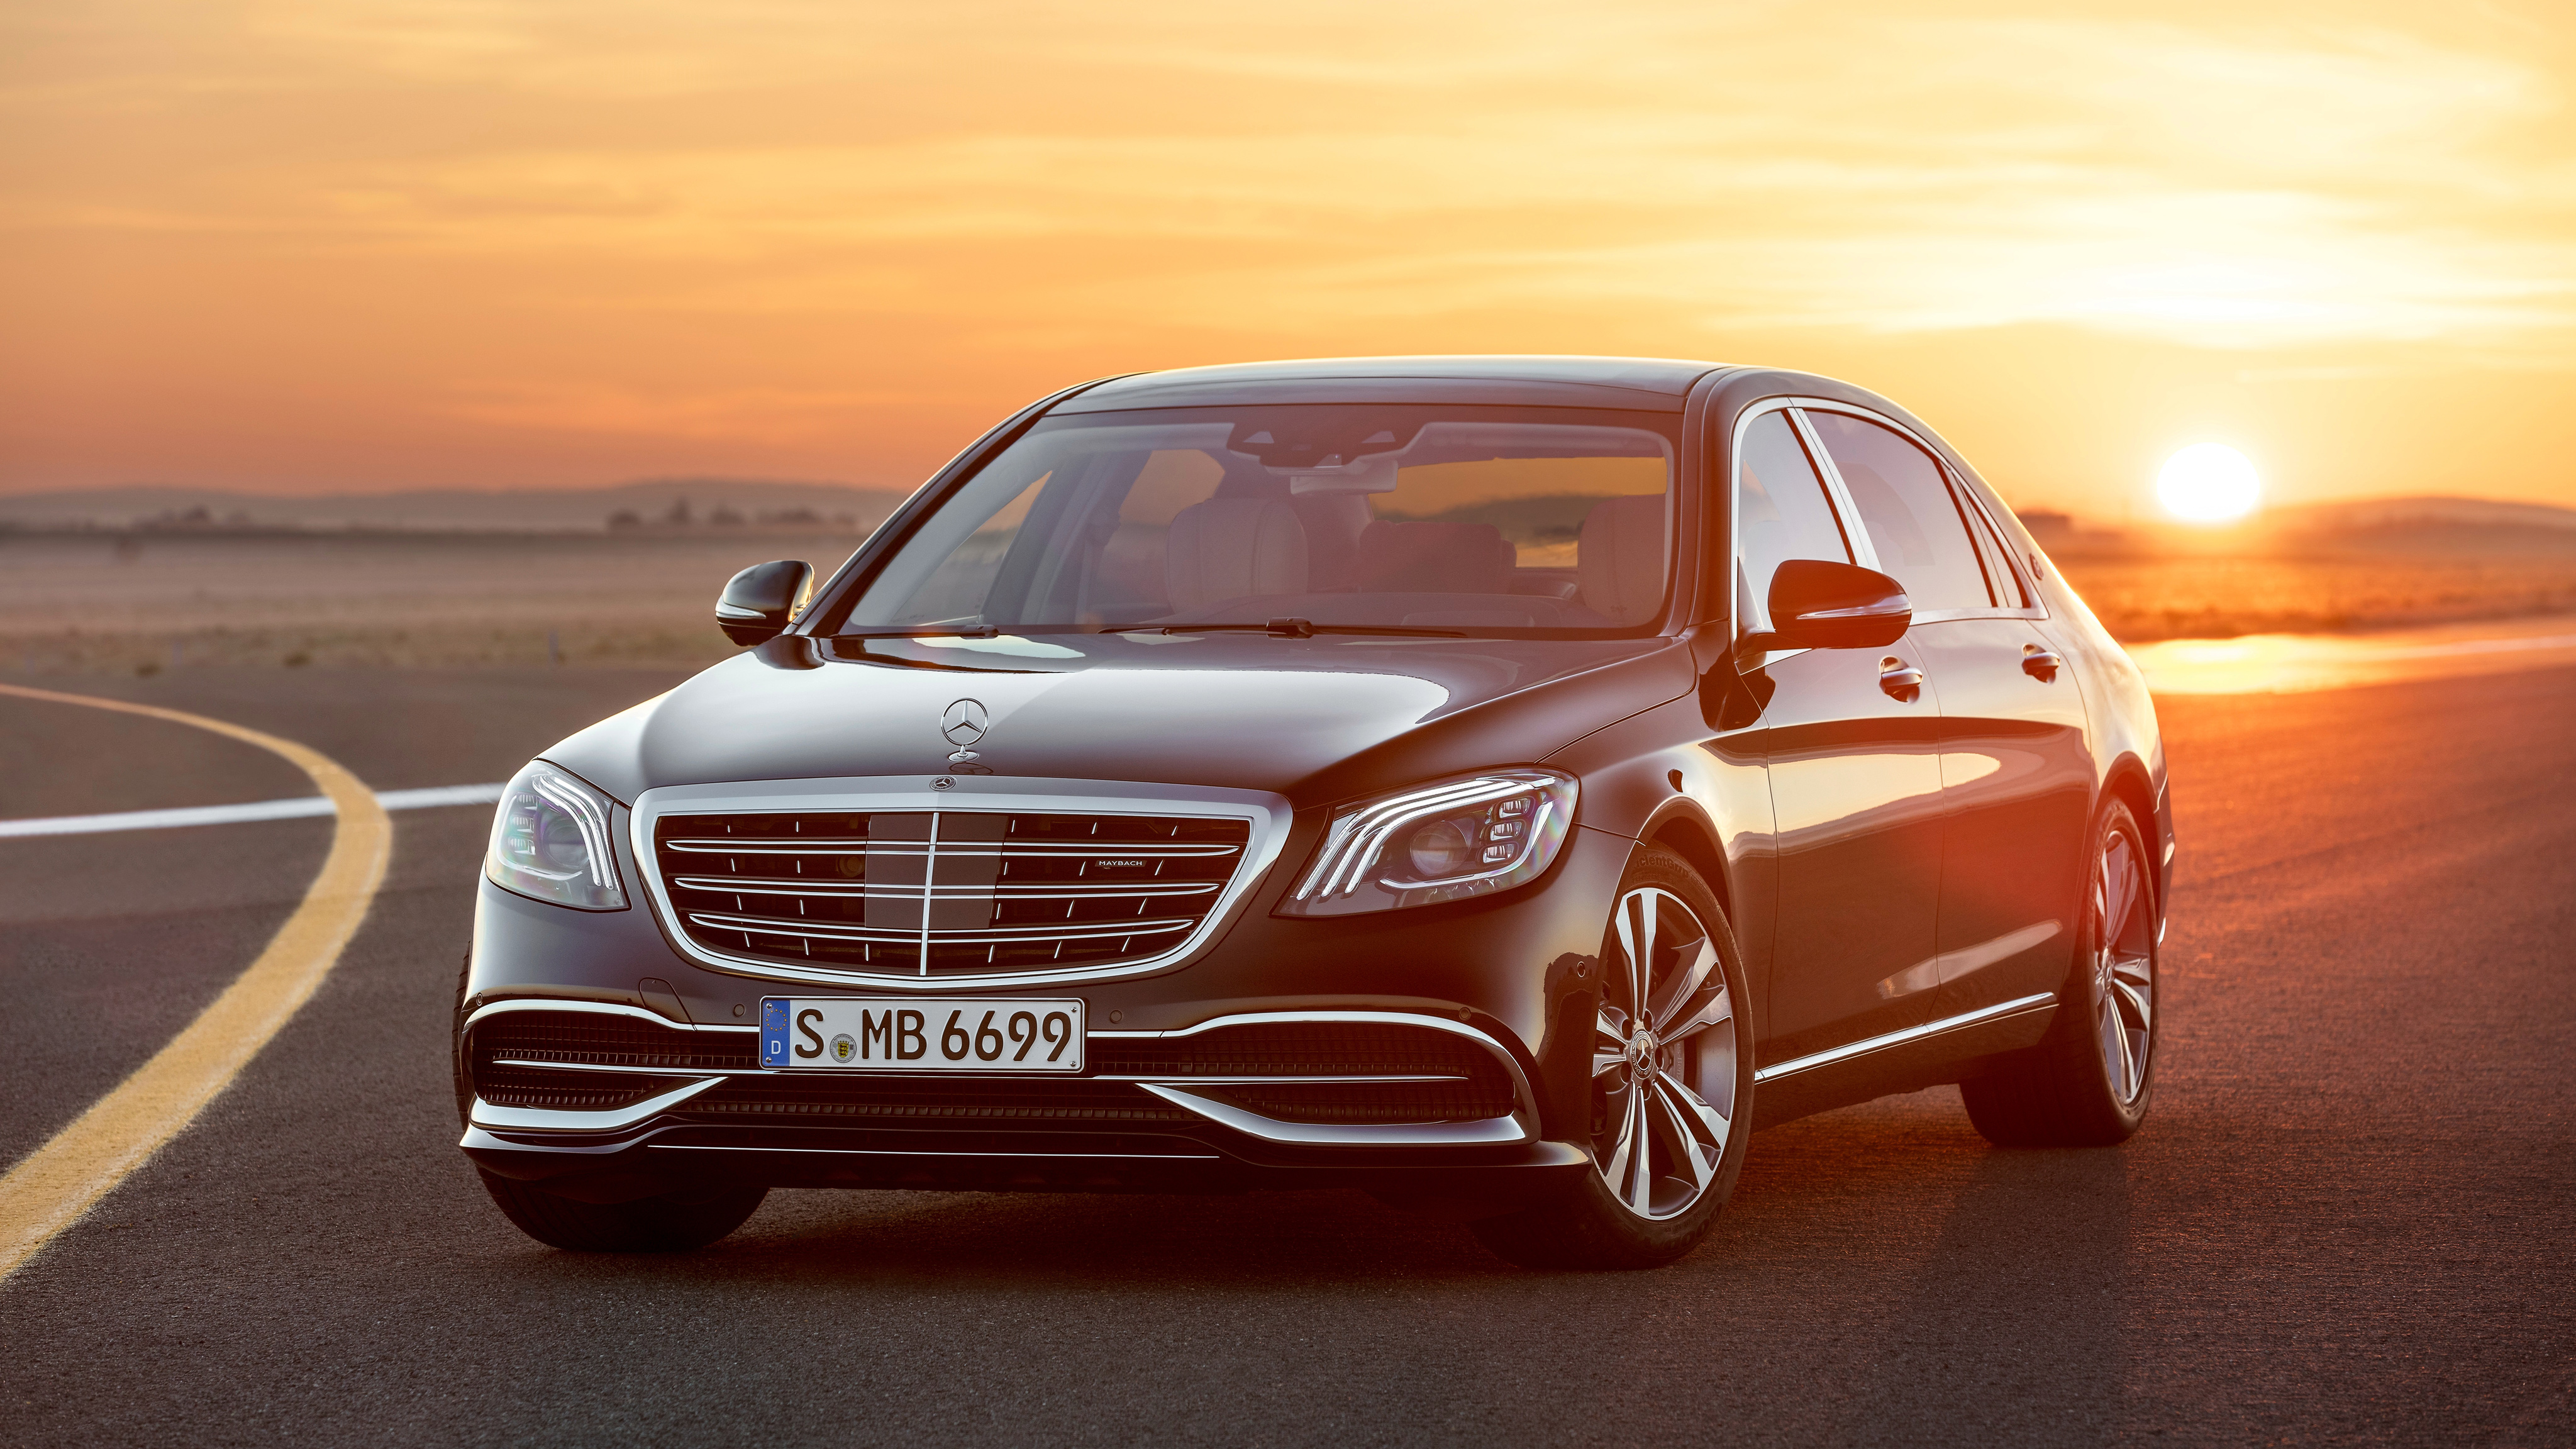 2017 mercedes maybach s650 4k wallpaper hd car for Mercedes benz s650